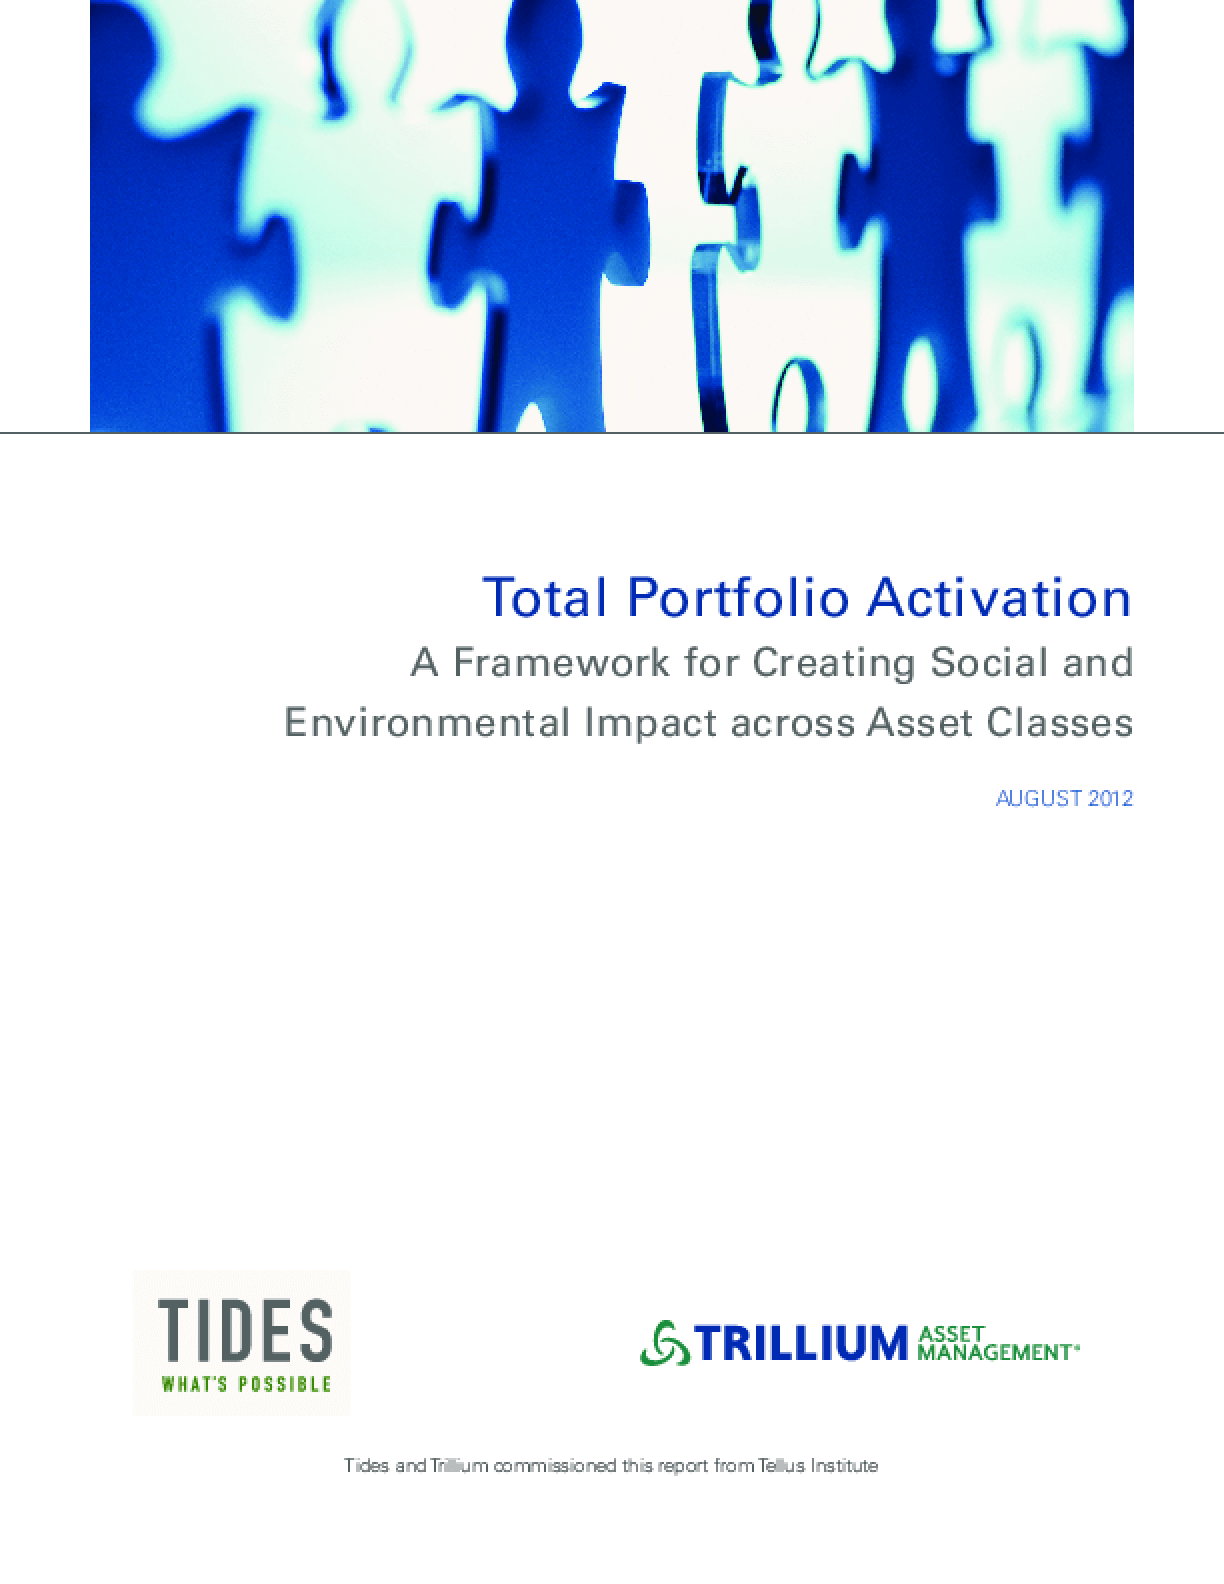 Total Portfolio Activation: A Framework for Creating Social and Environmental Impact across Asset Classes